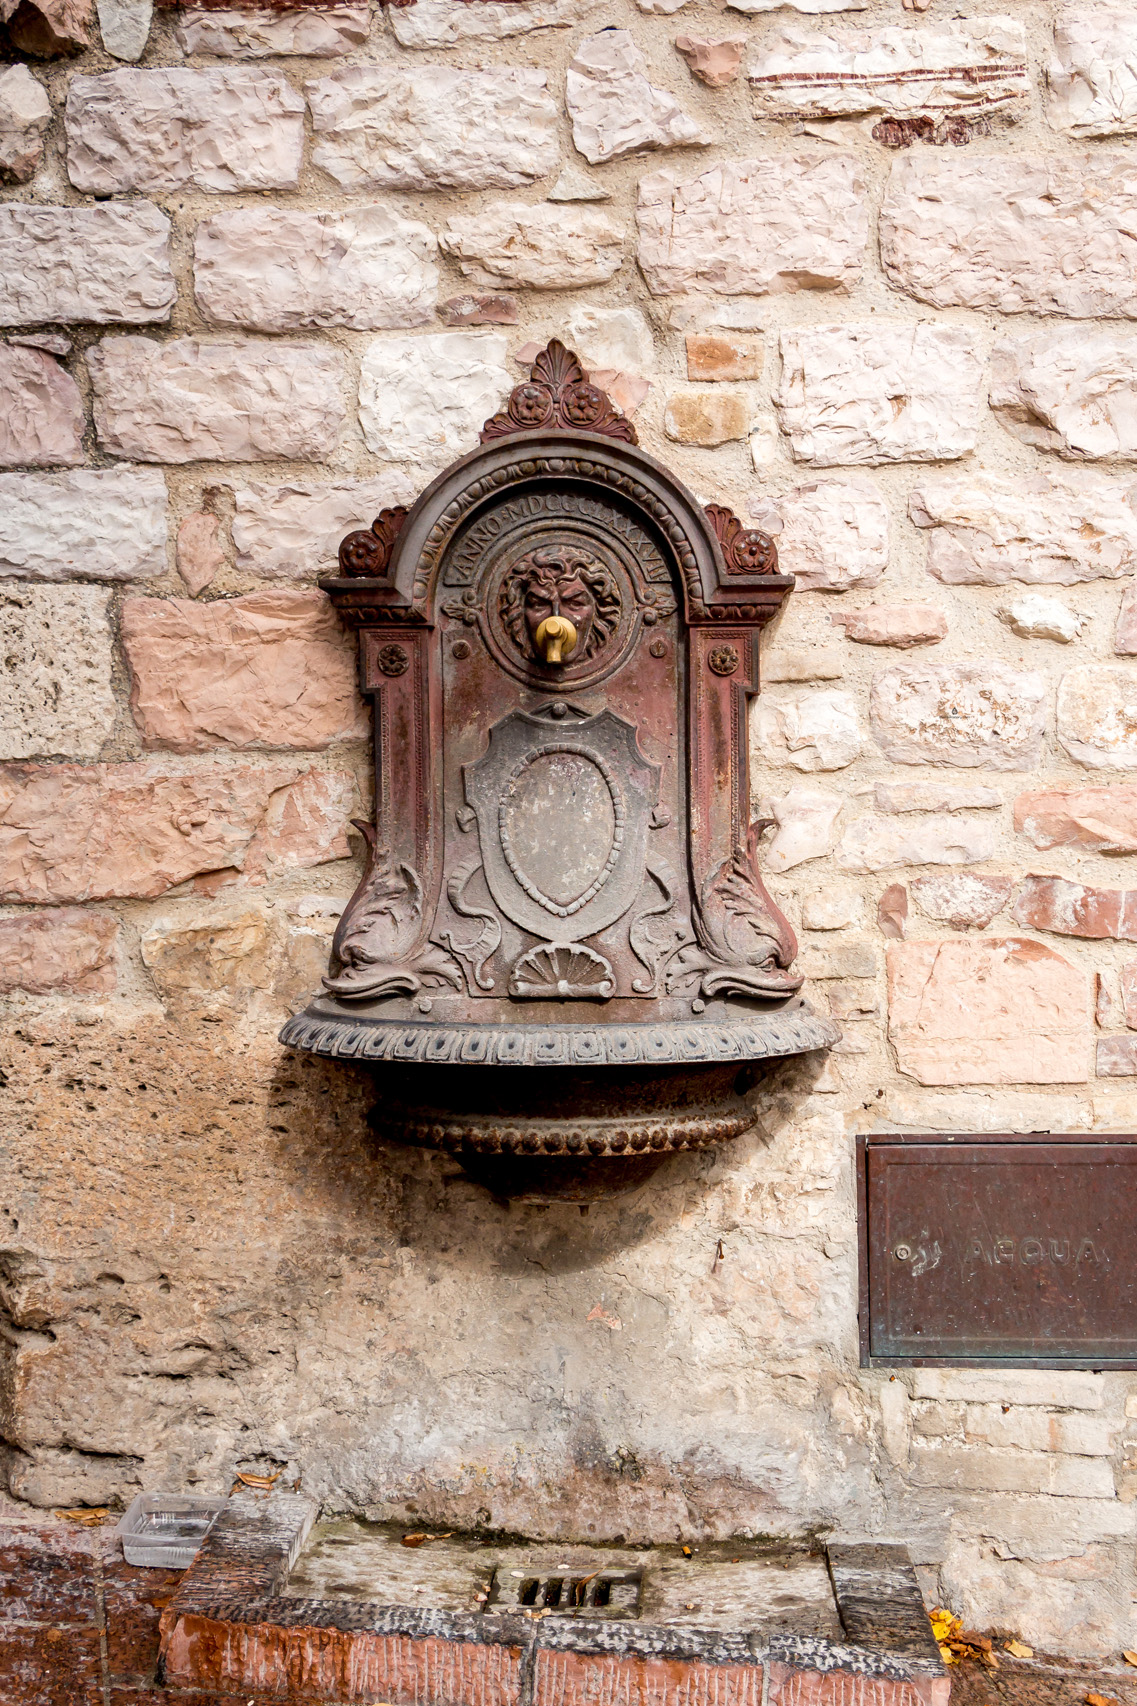 Water faucet in Assisi, Italy